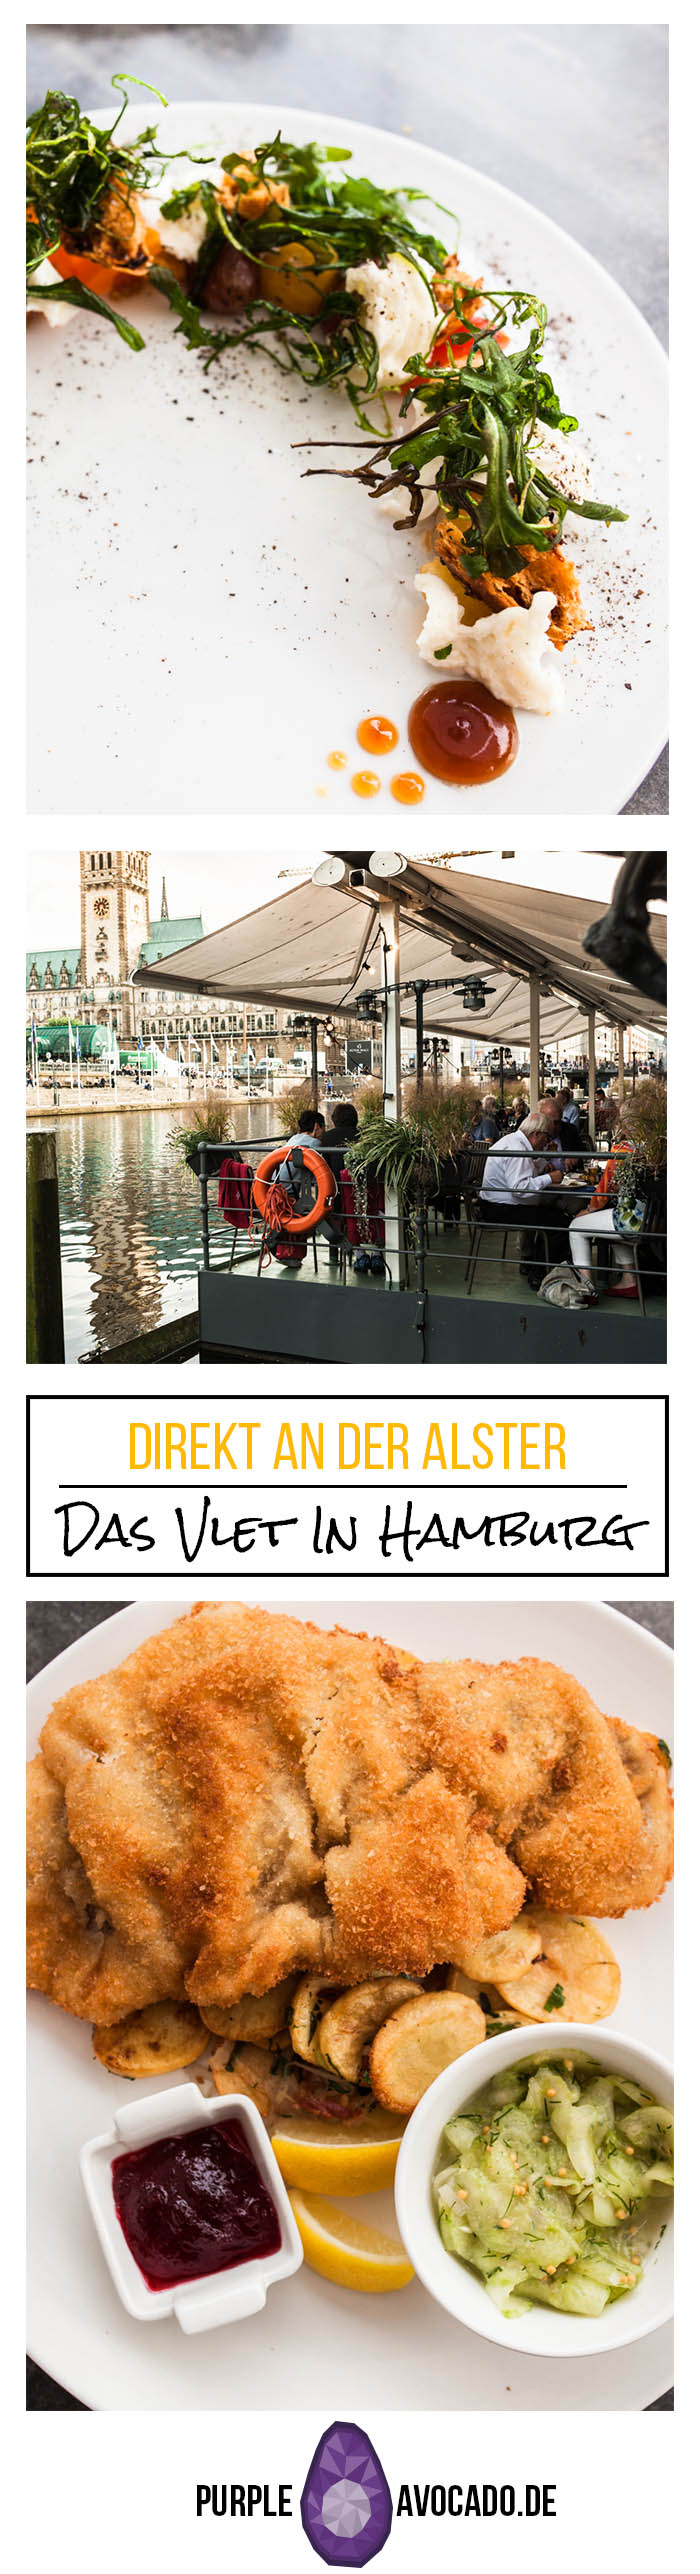 Hamburger Küche beste restaurants hamburg das vlet an der alster purple avocado